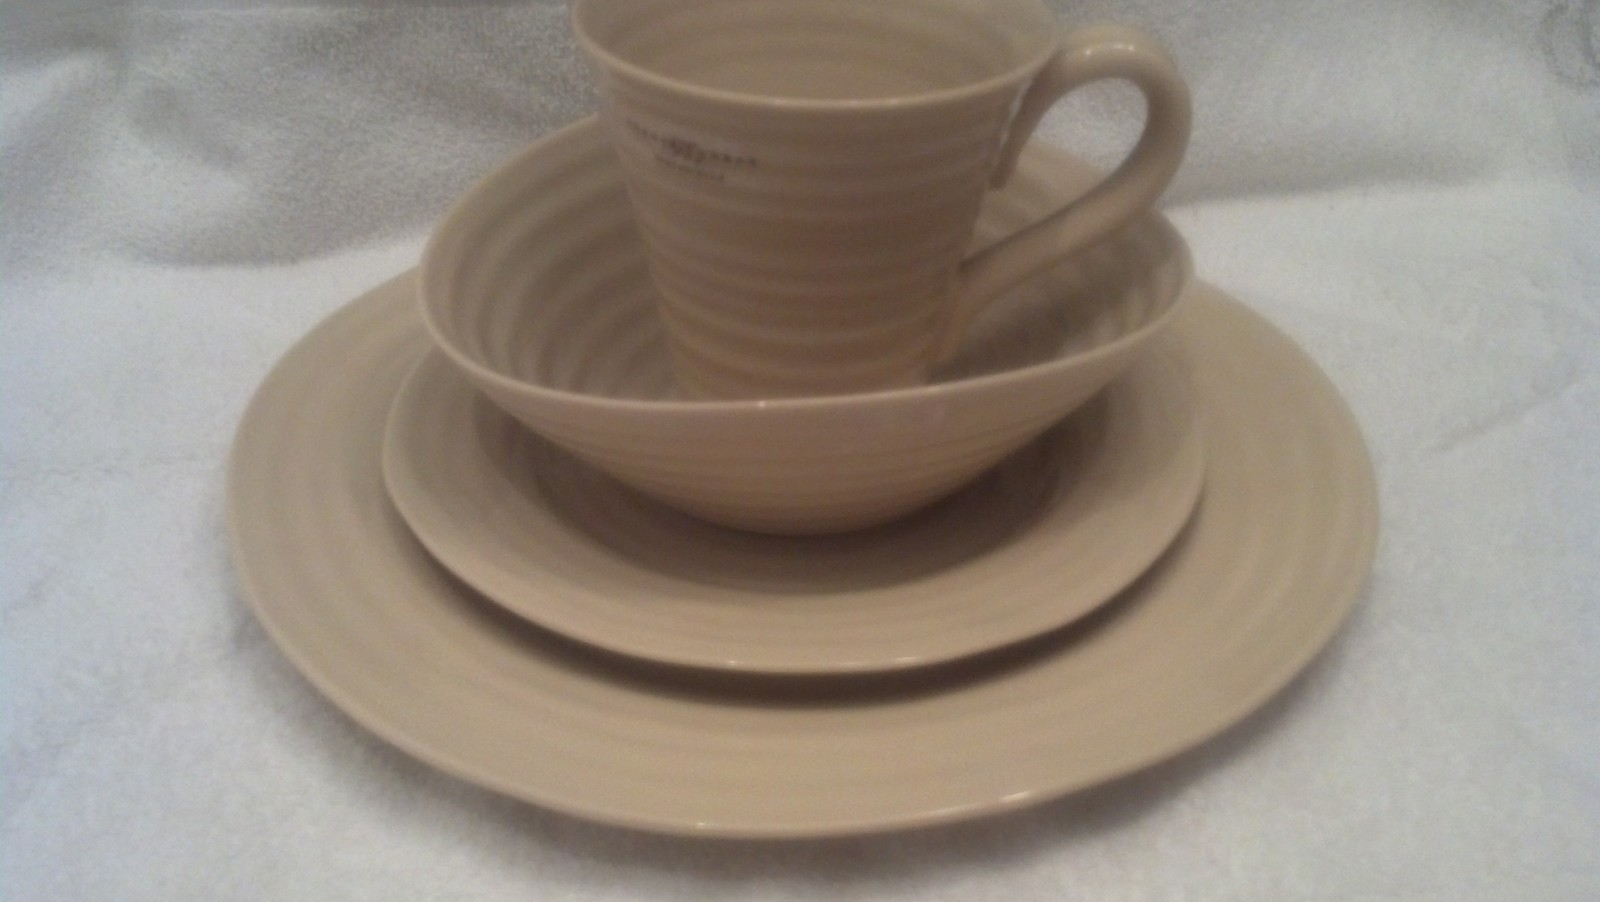 Sophie Conran 4 Piece Place setting set. Biscuit, Dishes, Kitchen Dishes - NEW